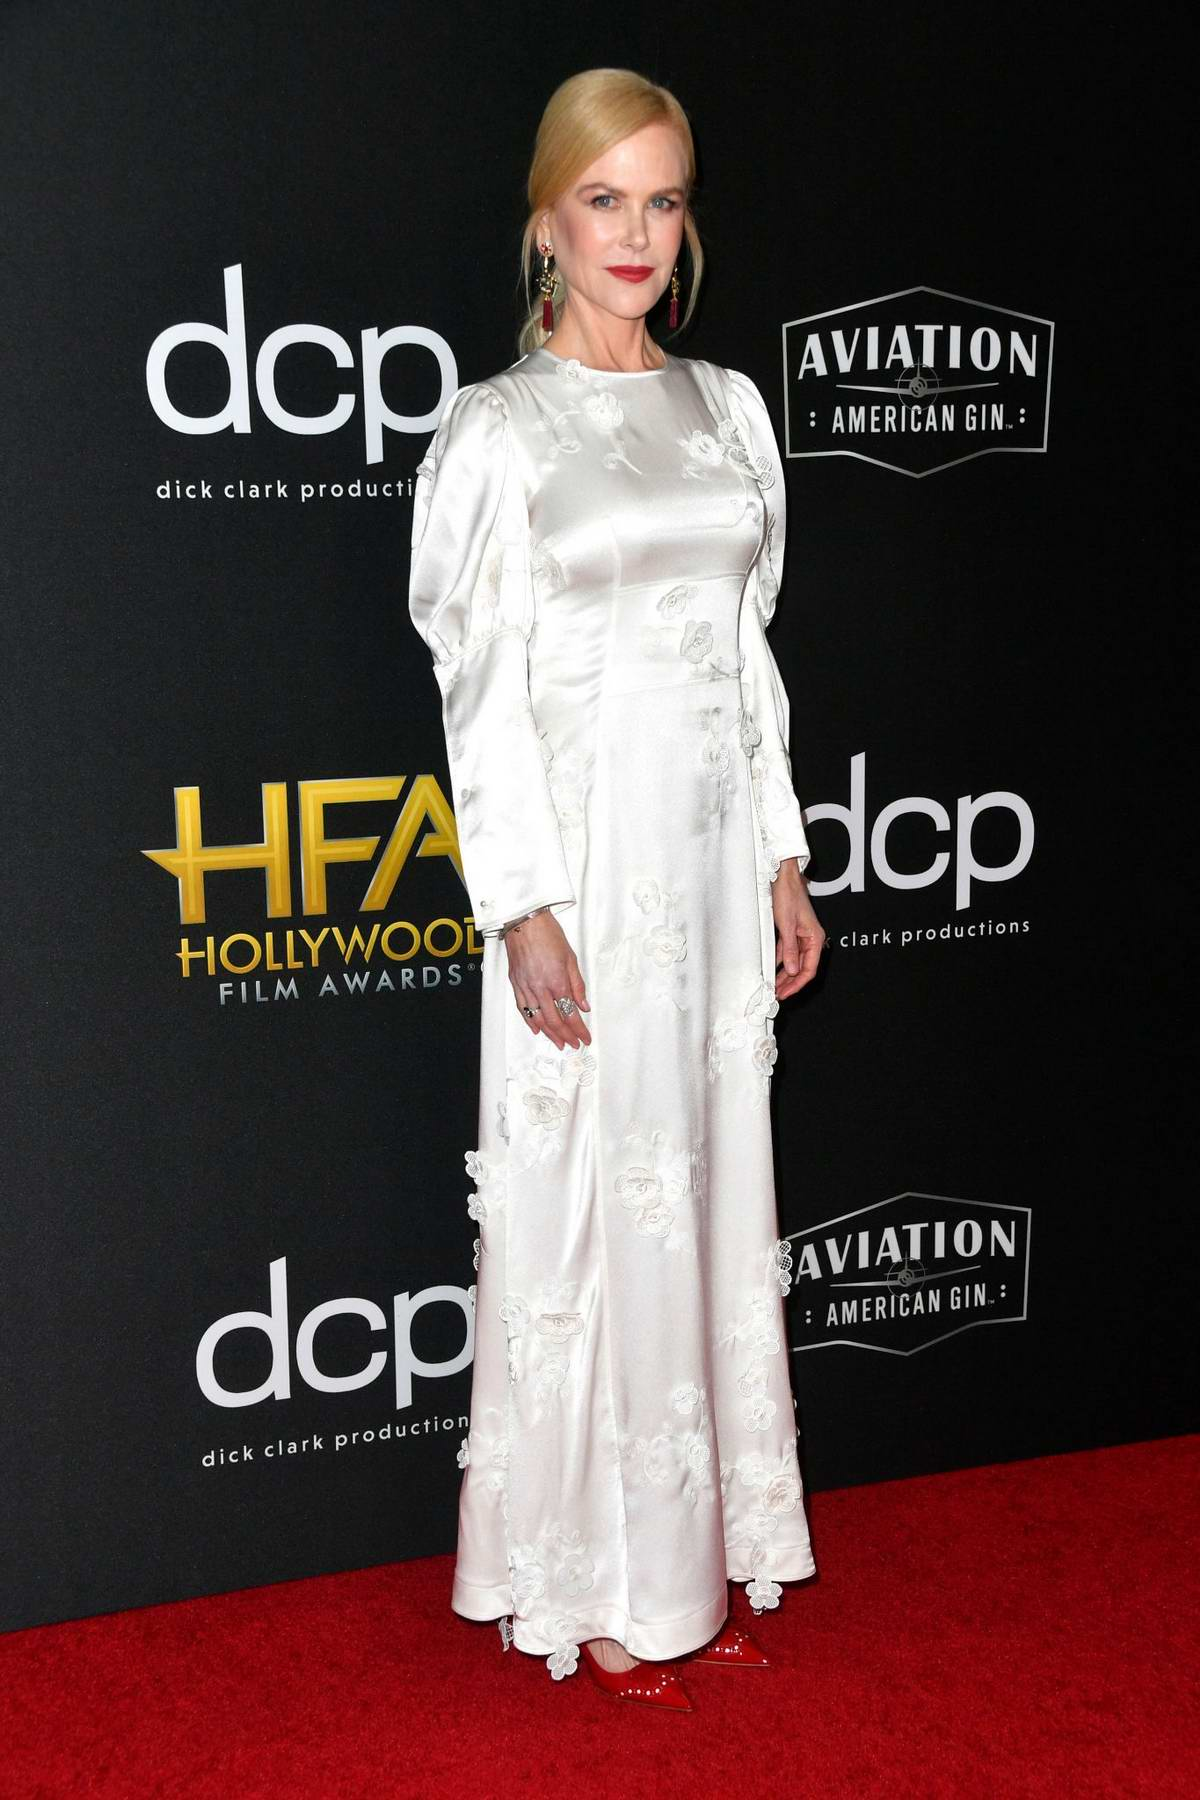 Nicole Kidman attends the 23rd Annual Hollywood Film Awards at The Beverly Hilton Hotel in Beverly Hills, Los Angeles